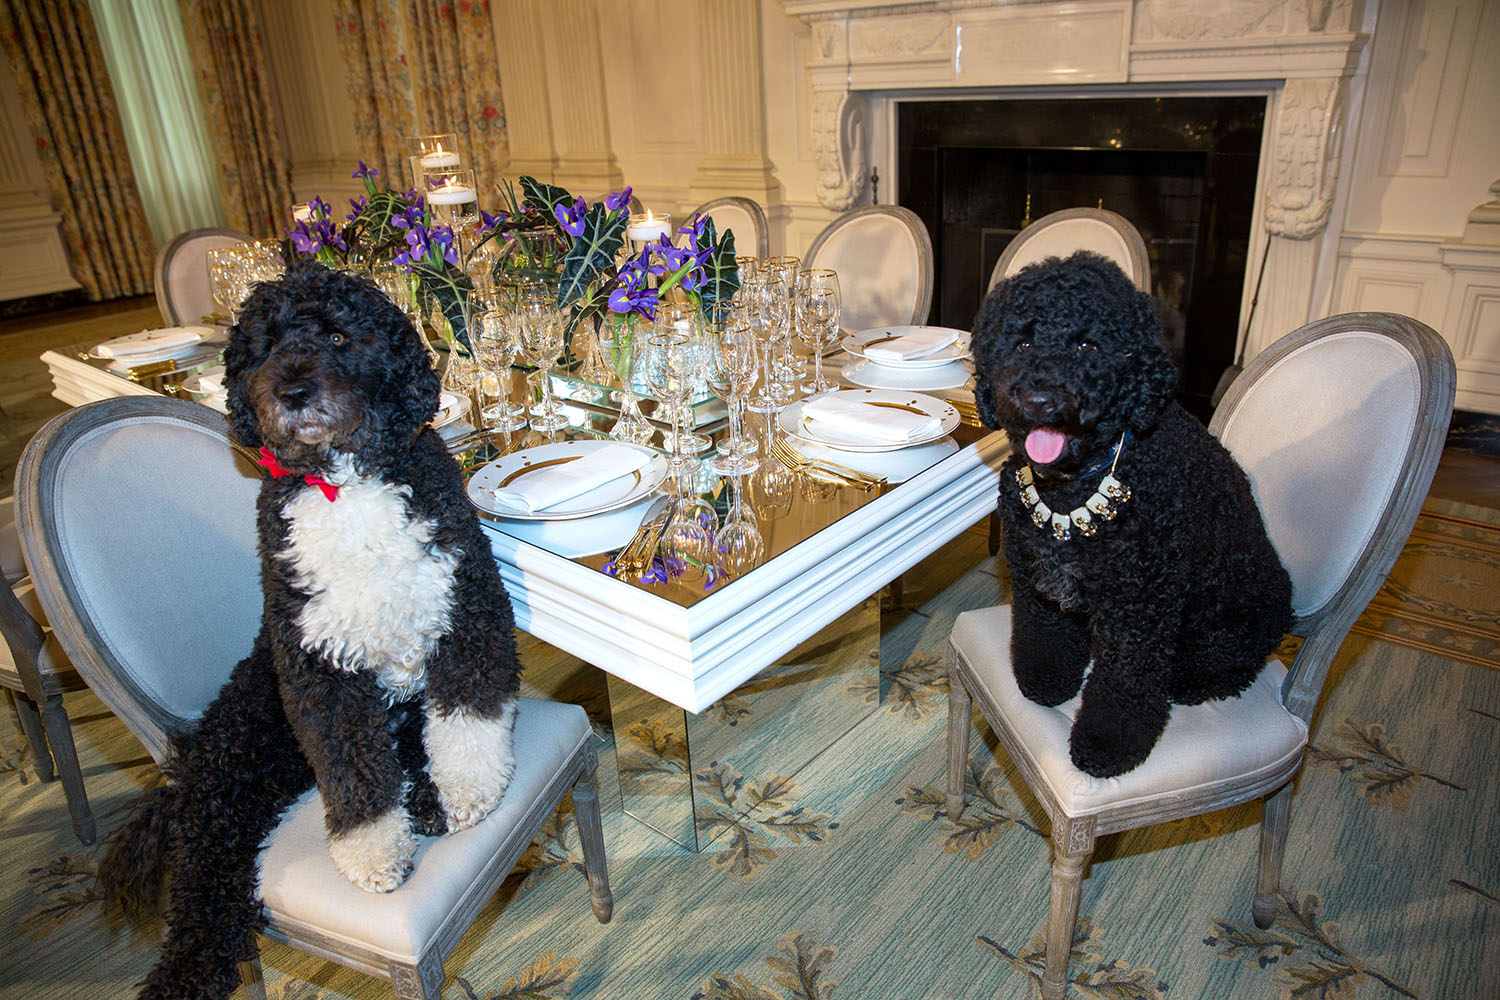 Obama family pets Bo, left, and Sunny sit at a table in the State Dining Room of the White House, Feb. 10, 2014. The table settings will be used at the State Dinner for President François Hollande of France.